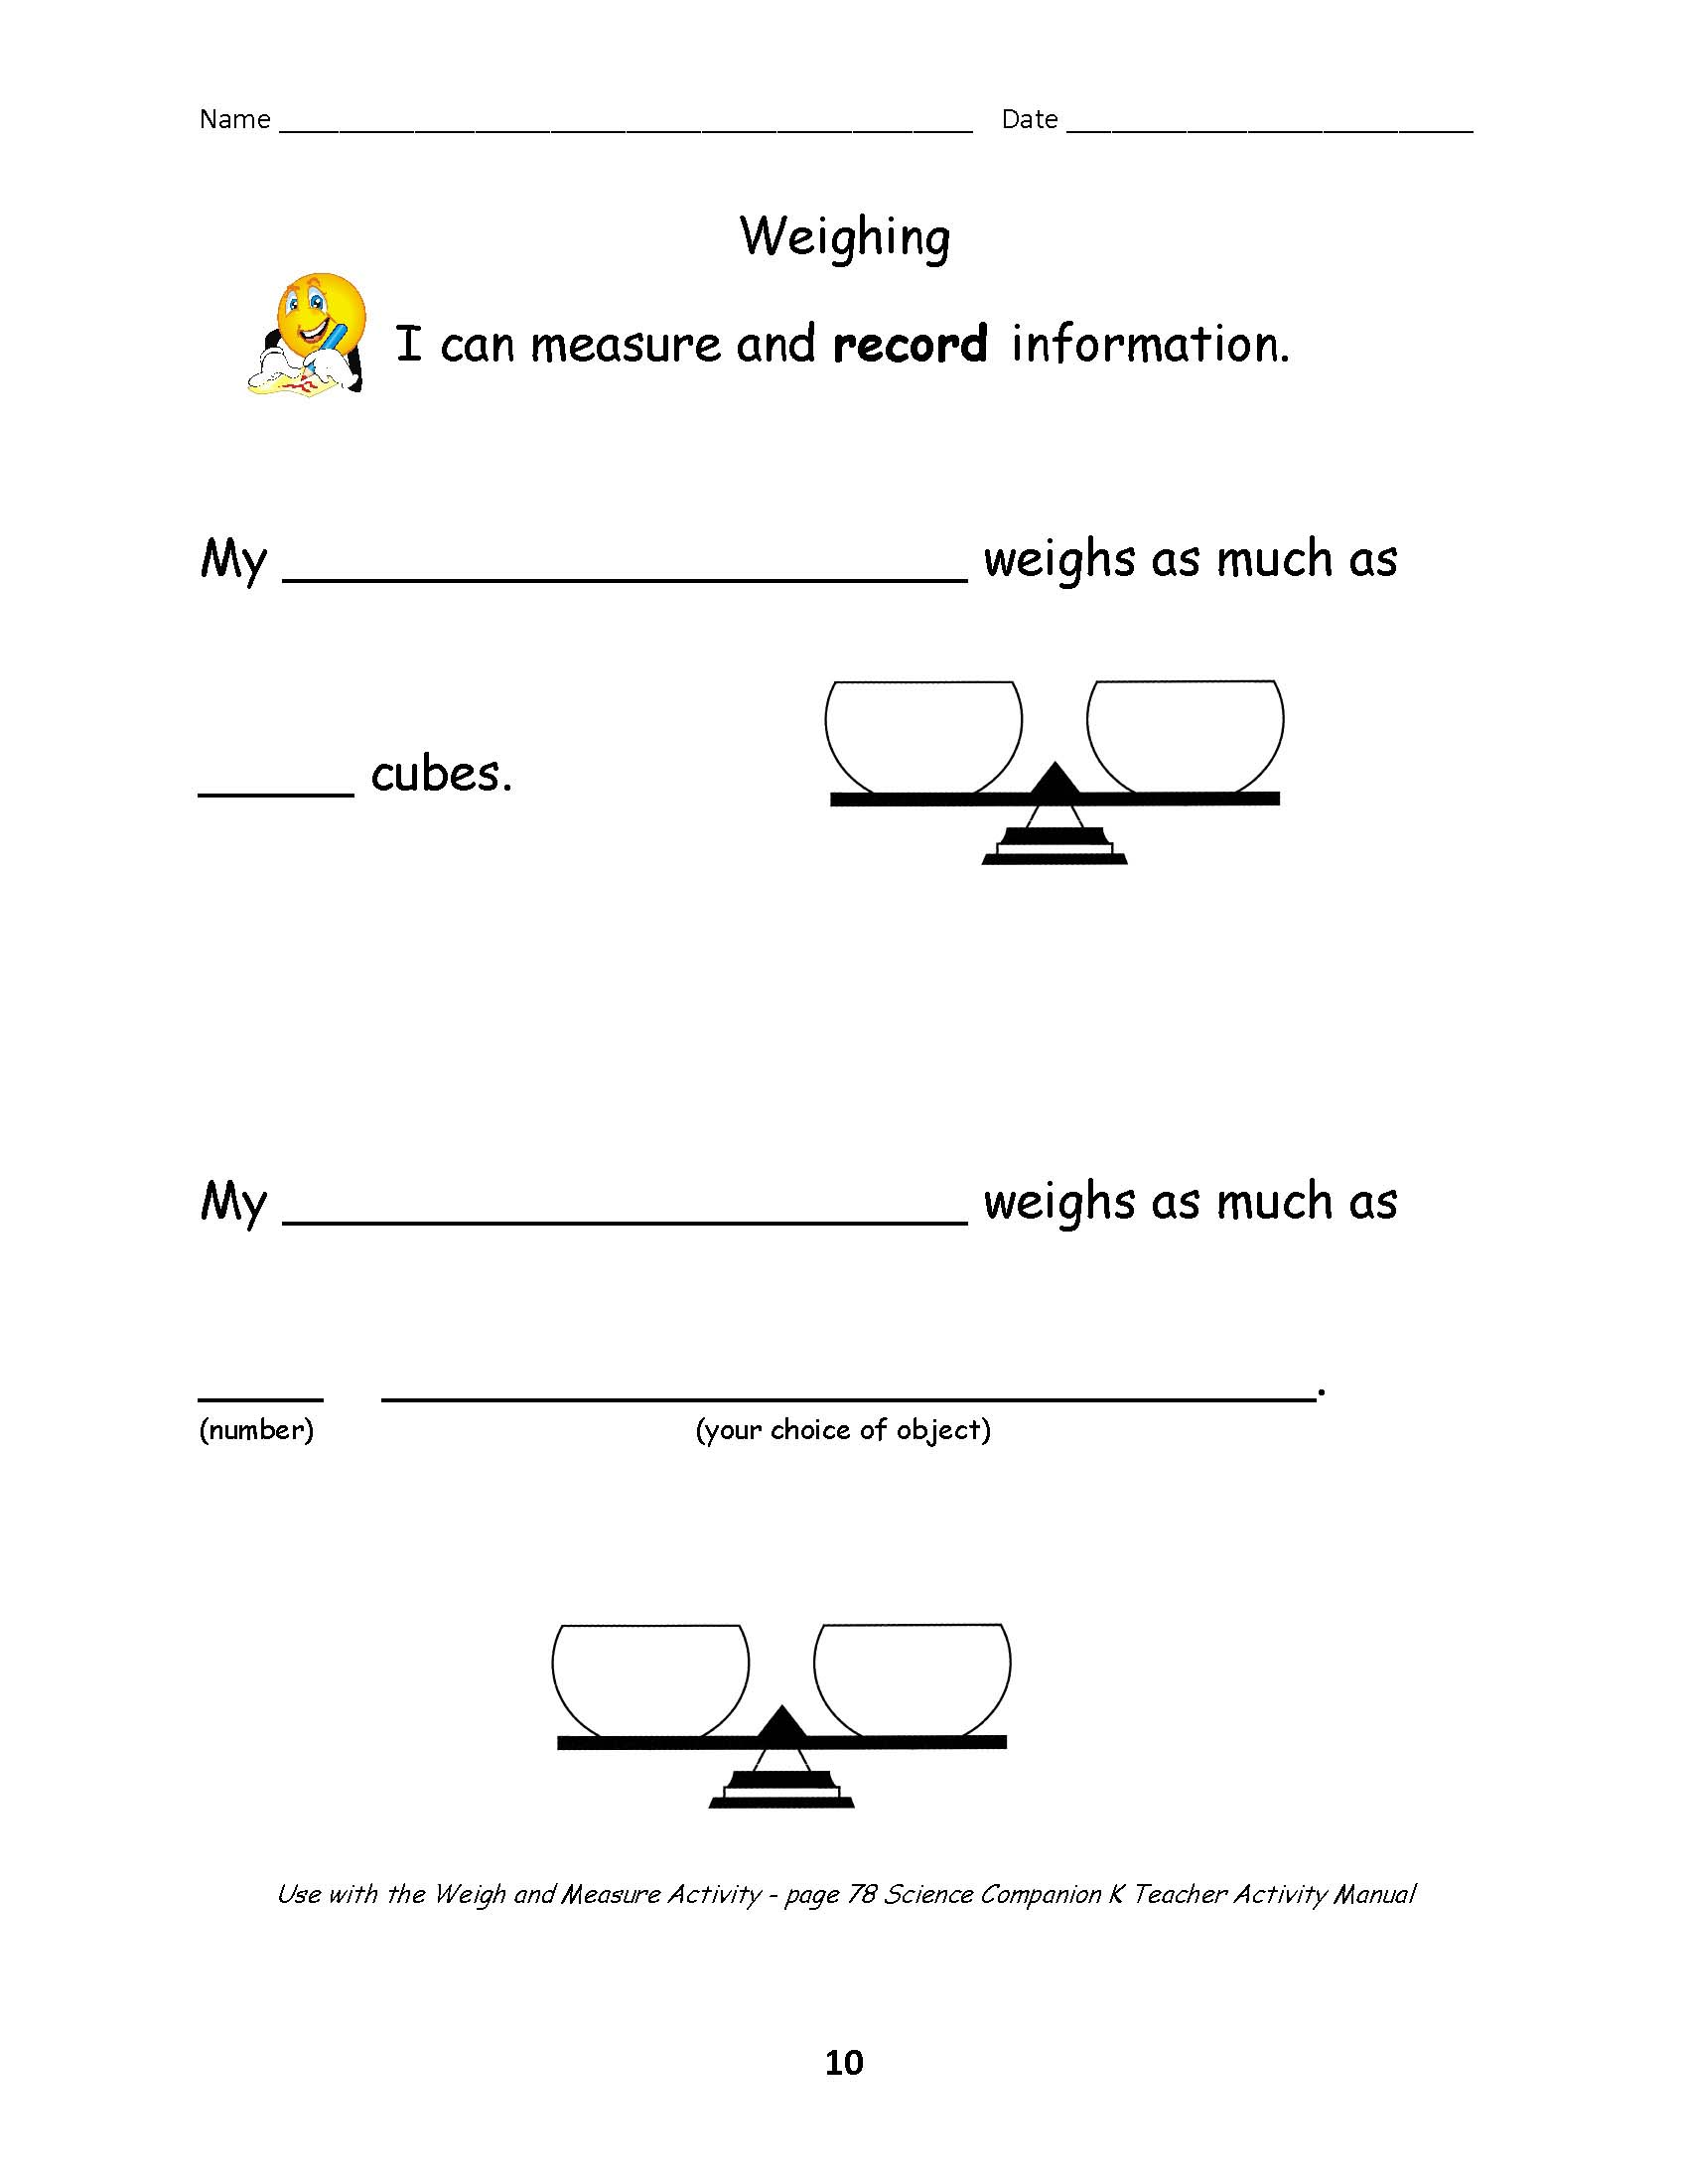 Worksheets Scientific Measurement Worksheet science and children online connections checklist measuring worksheet weighing worksheet